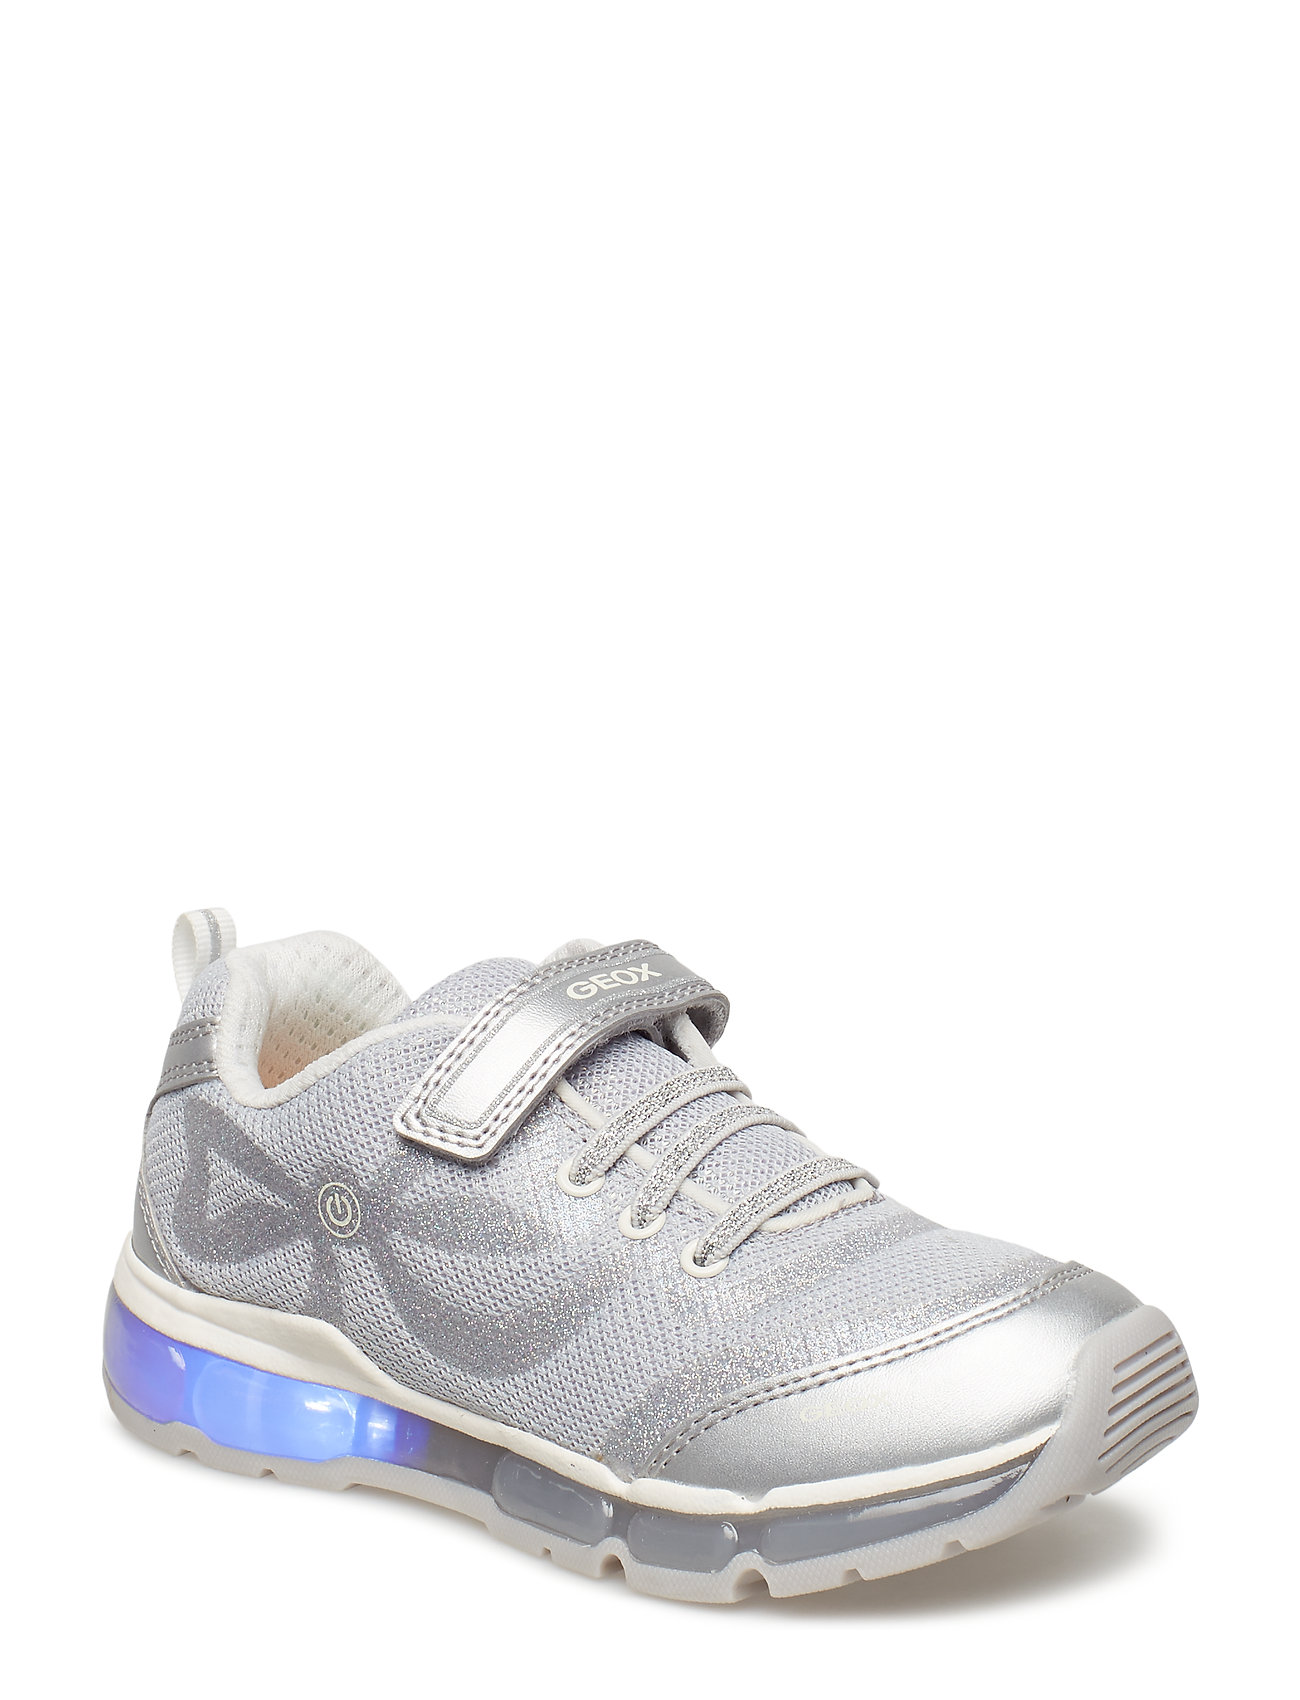 GEOX JR ANDROID GIRL - SILVER